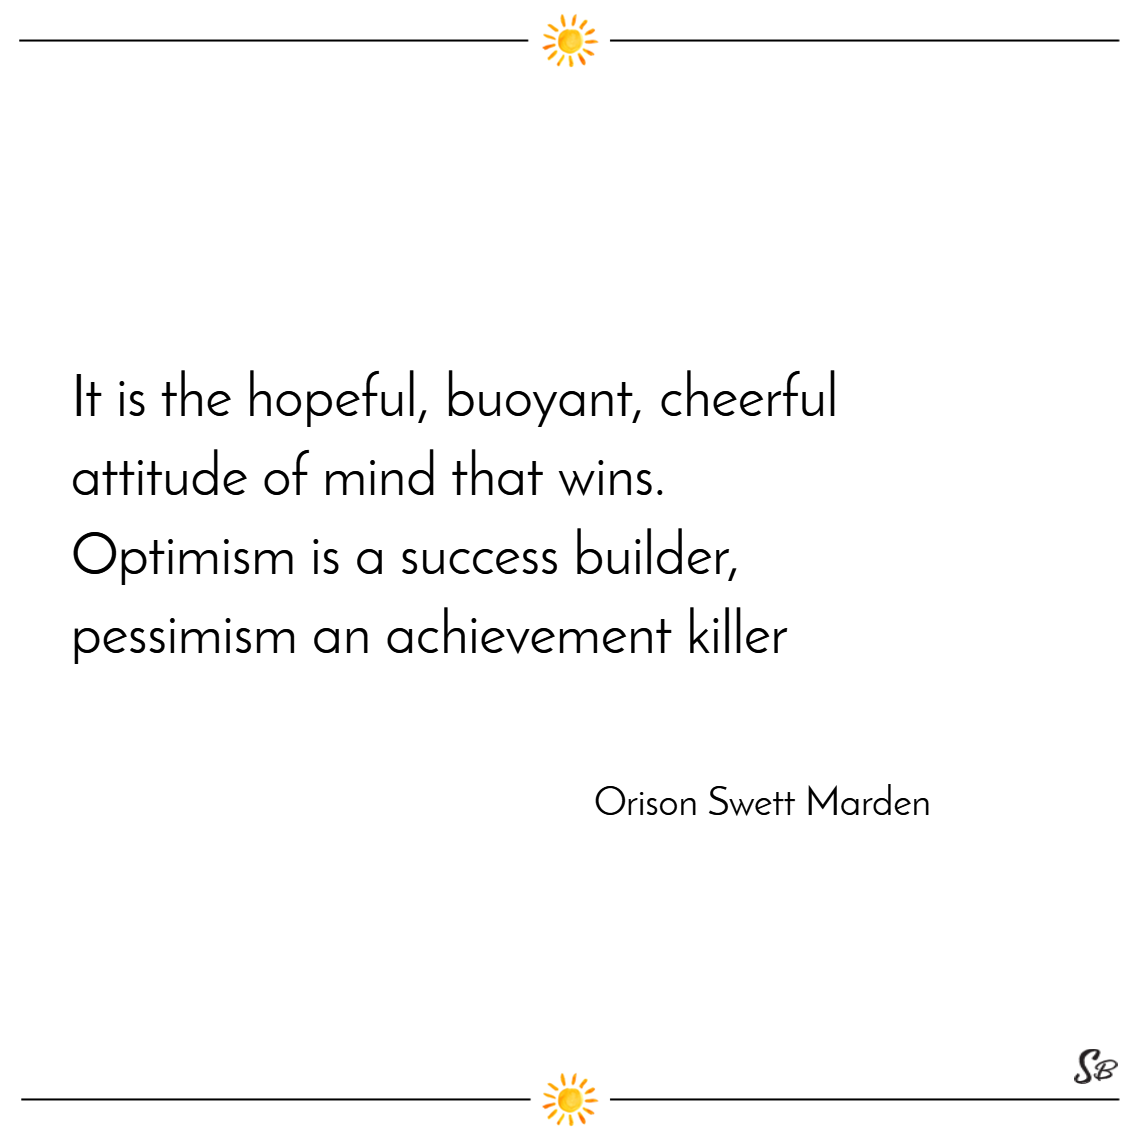 It is the hopeful, buoyant, cheerful attitude of mind that wins. optimism is a success builder; pessimism an achievement killer. –orison swett marden